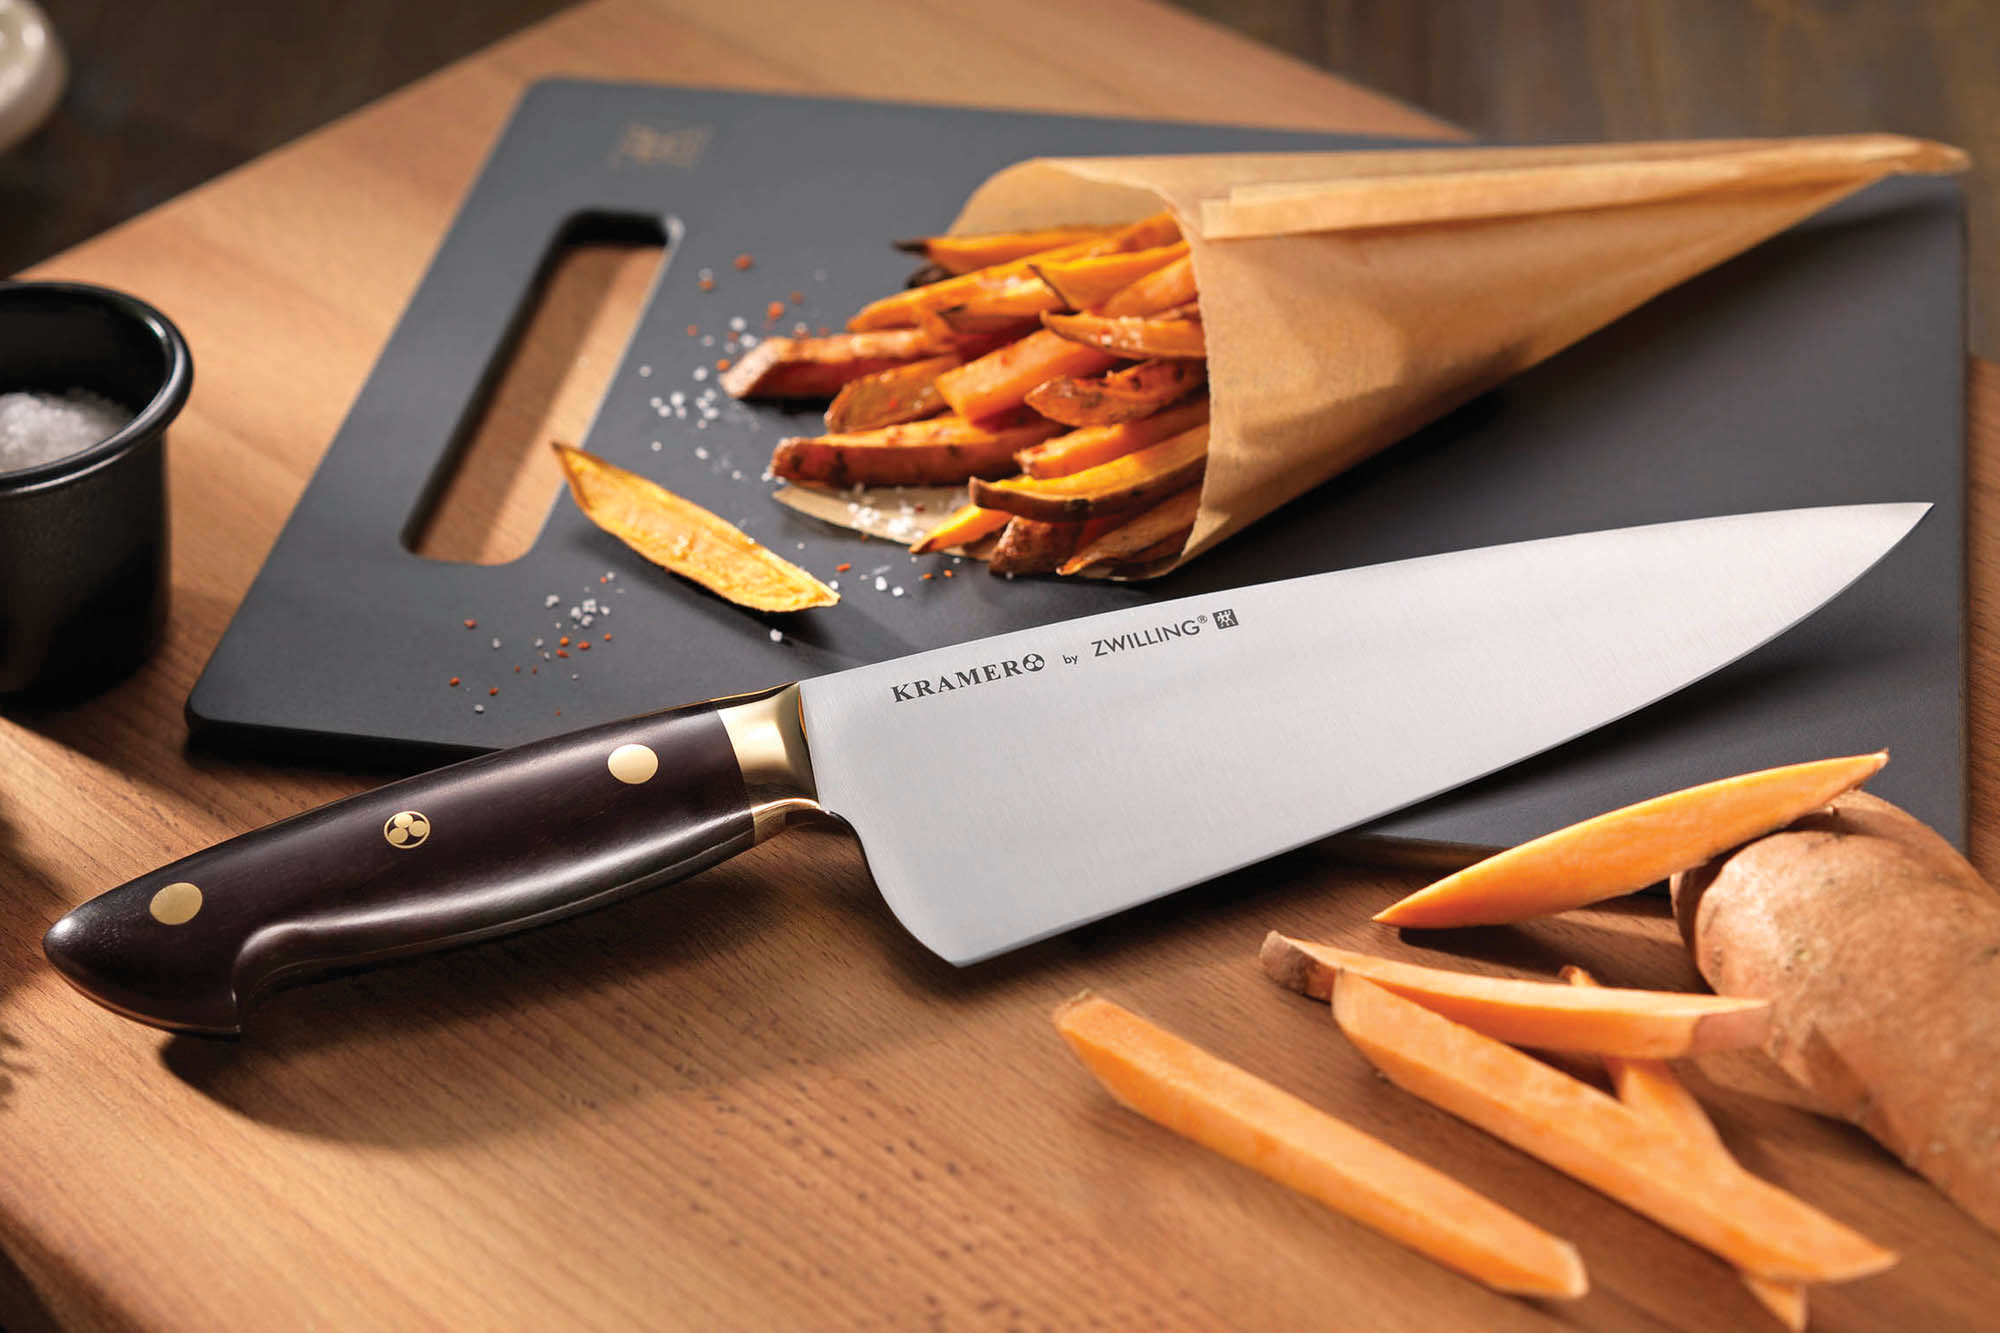 bob kramer carbon steel chef 39 s knife 8 inch by zwilling knives cutlery and more. Black Bedroom Furniture Sets. Home Design Ideas